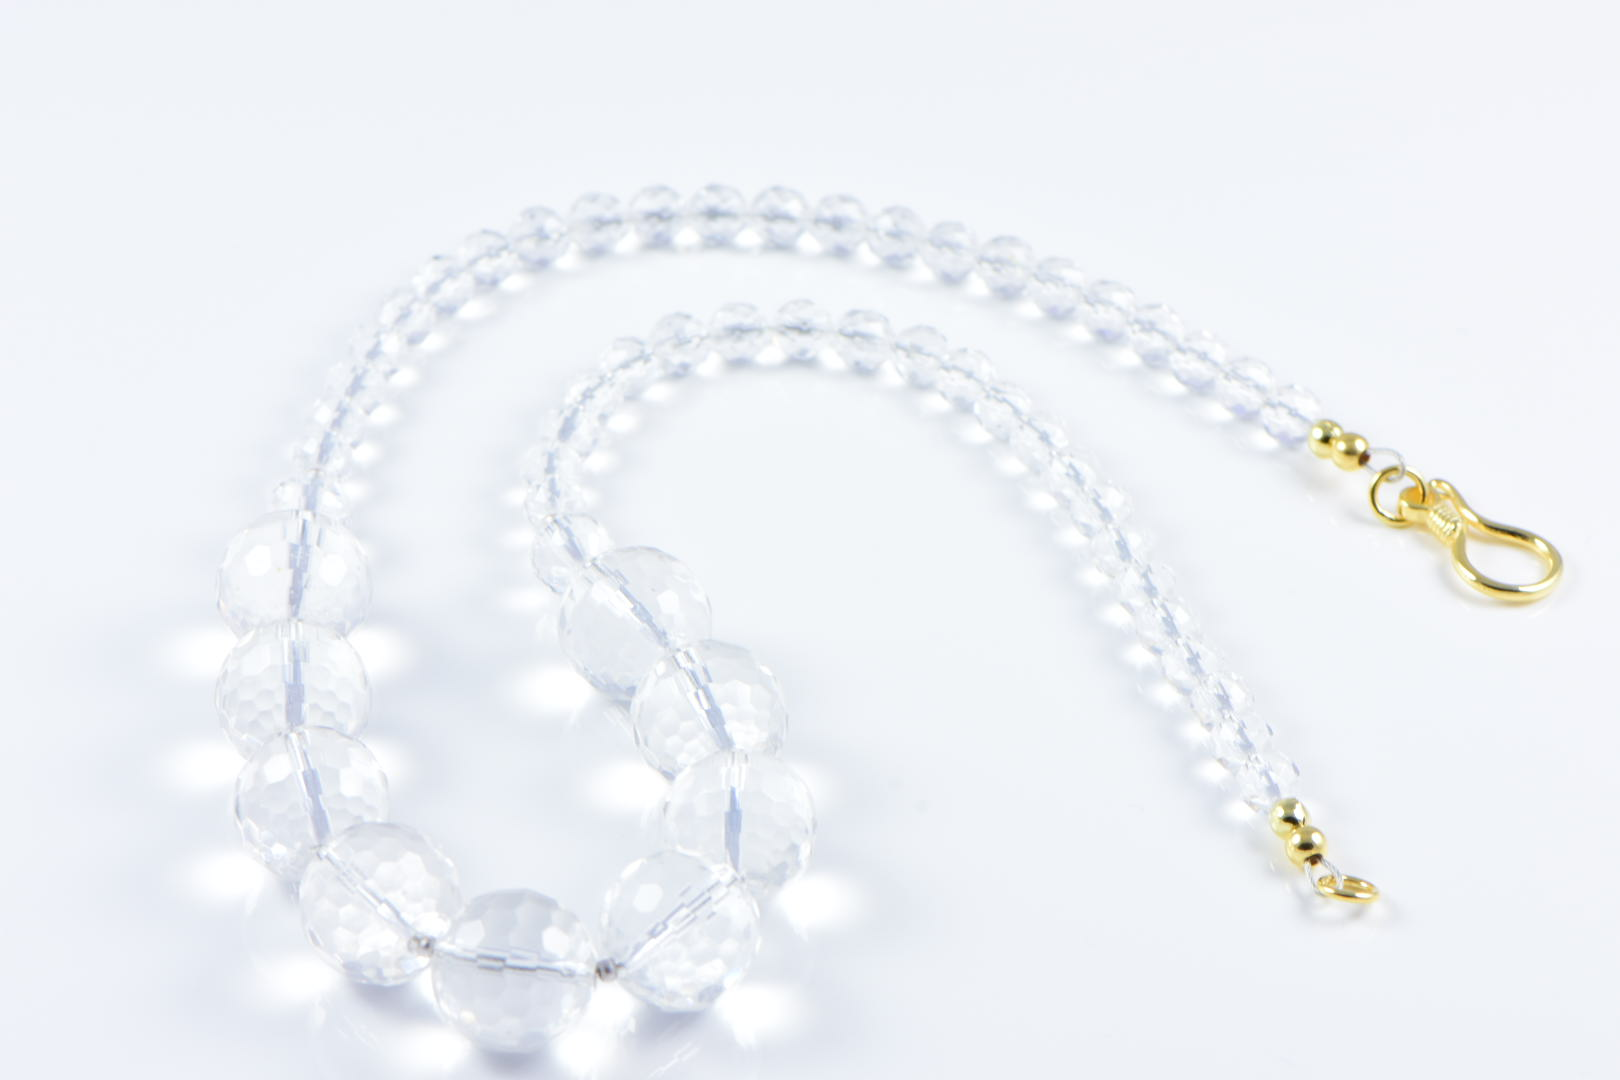 AqBeadsUk Classic Semi-Precious 14mm & 6mm Gemstone Clear Crystal Quartz Faceted Round Beads 19 inch Luxury Handmade Women's Necklace